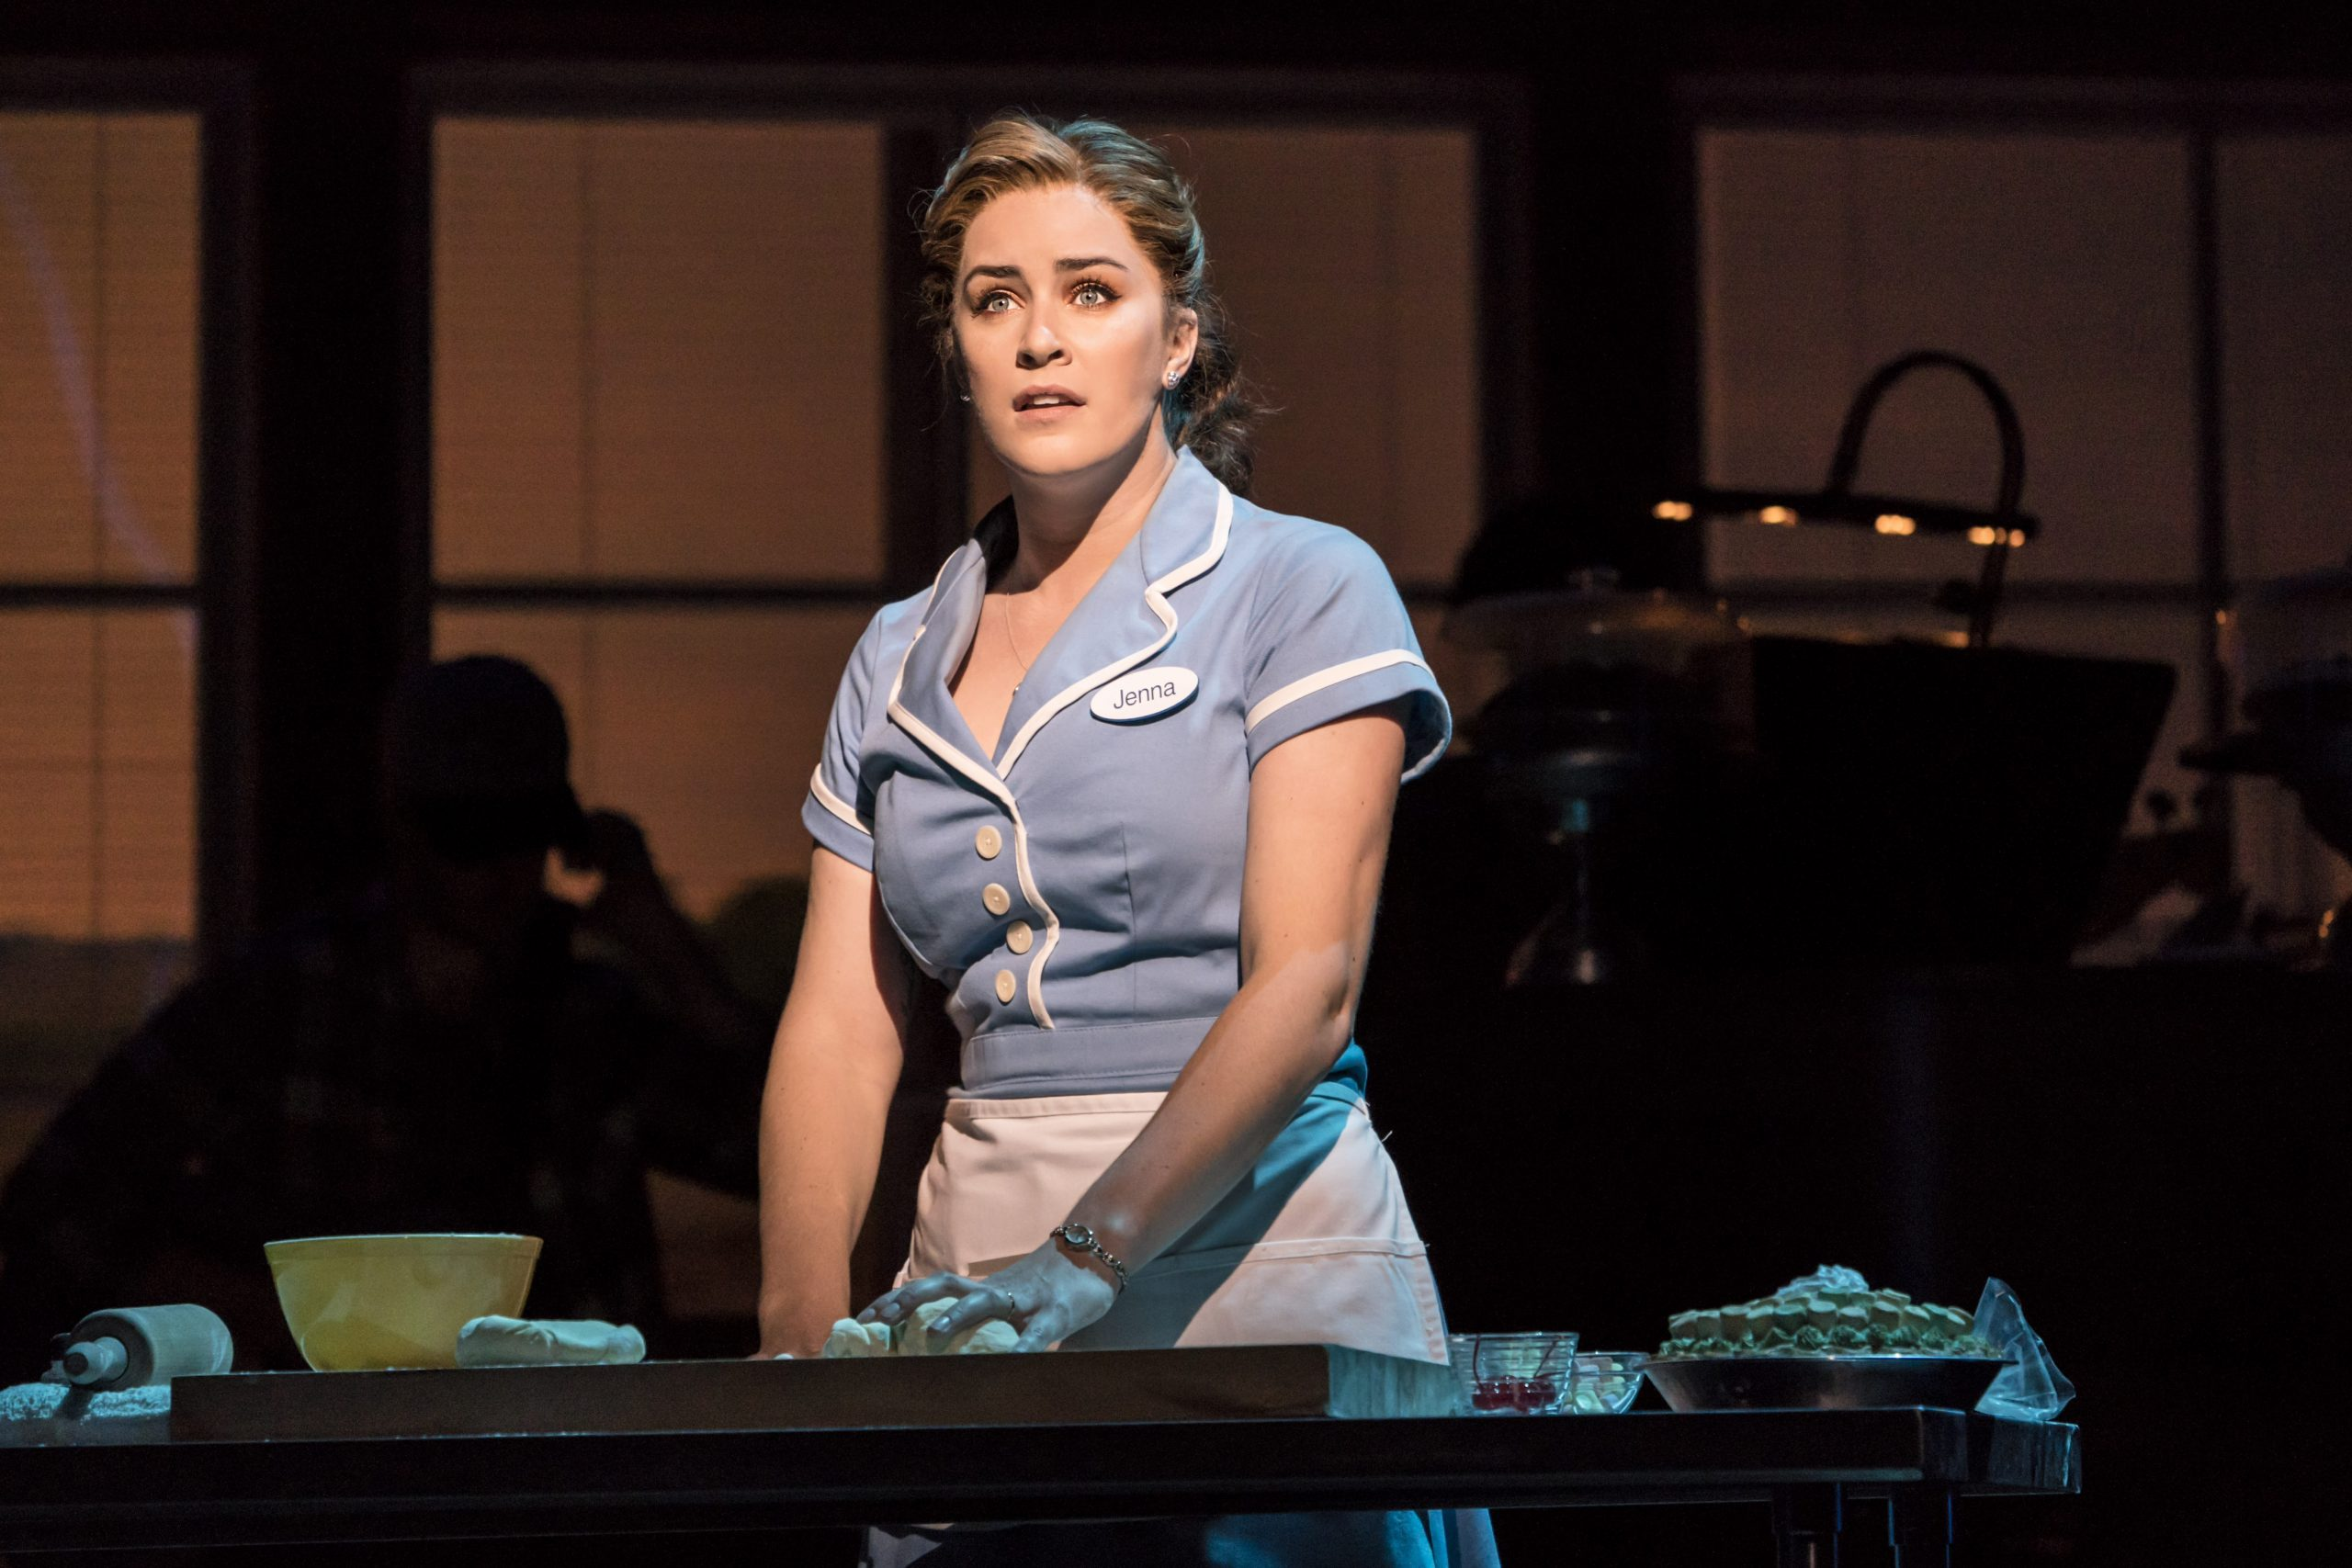 Lucie Jones as Jenna in Waitress. She is wearing a waitress uniform comprising a pale blue dress with white buttons and a white apron. Stood at a table, she is kneading pastry with a wistful expression on her face.